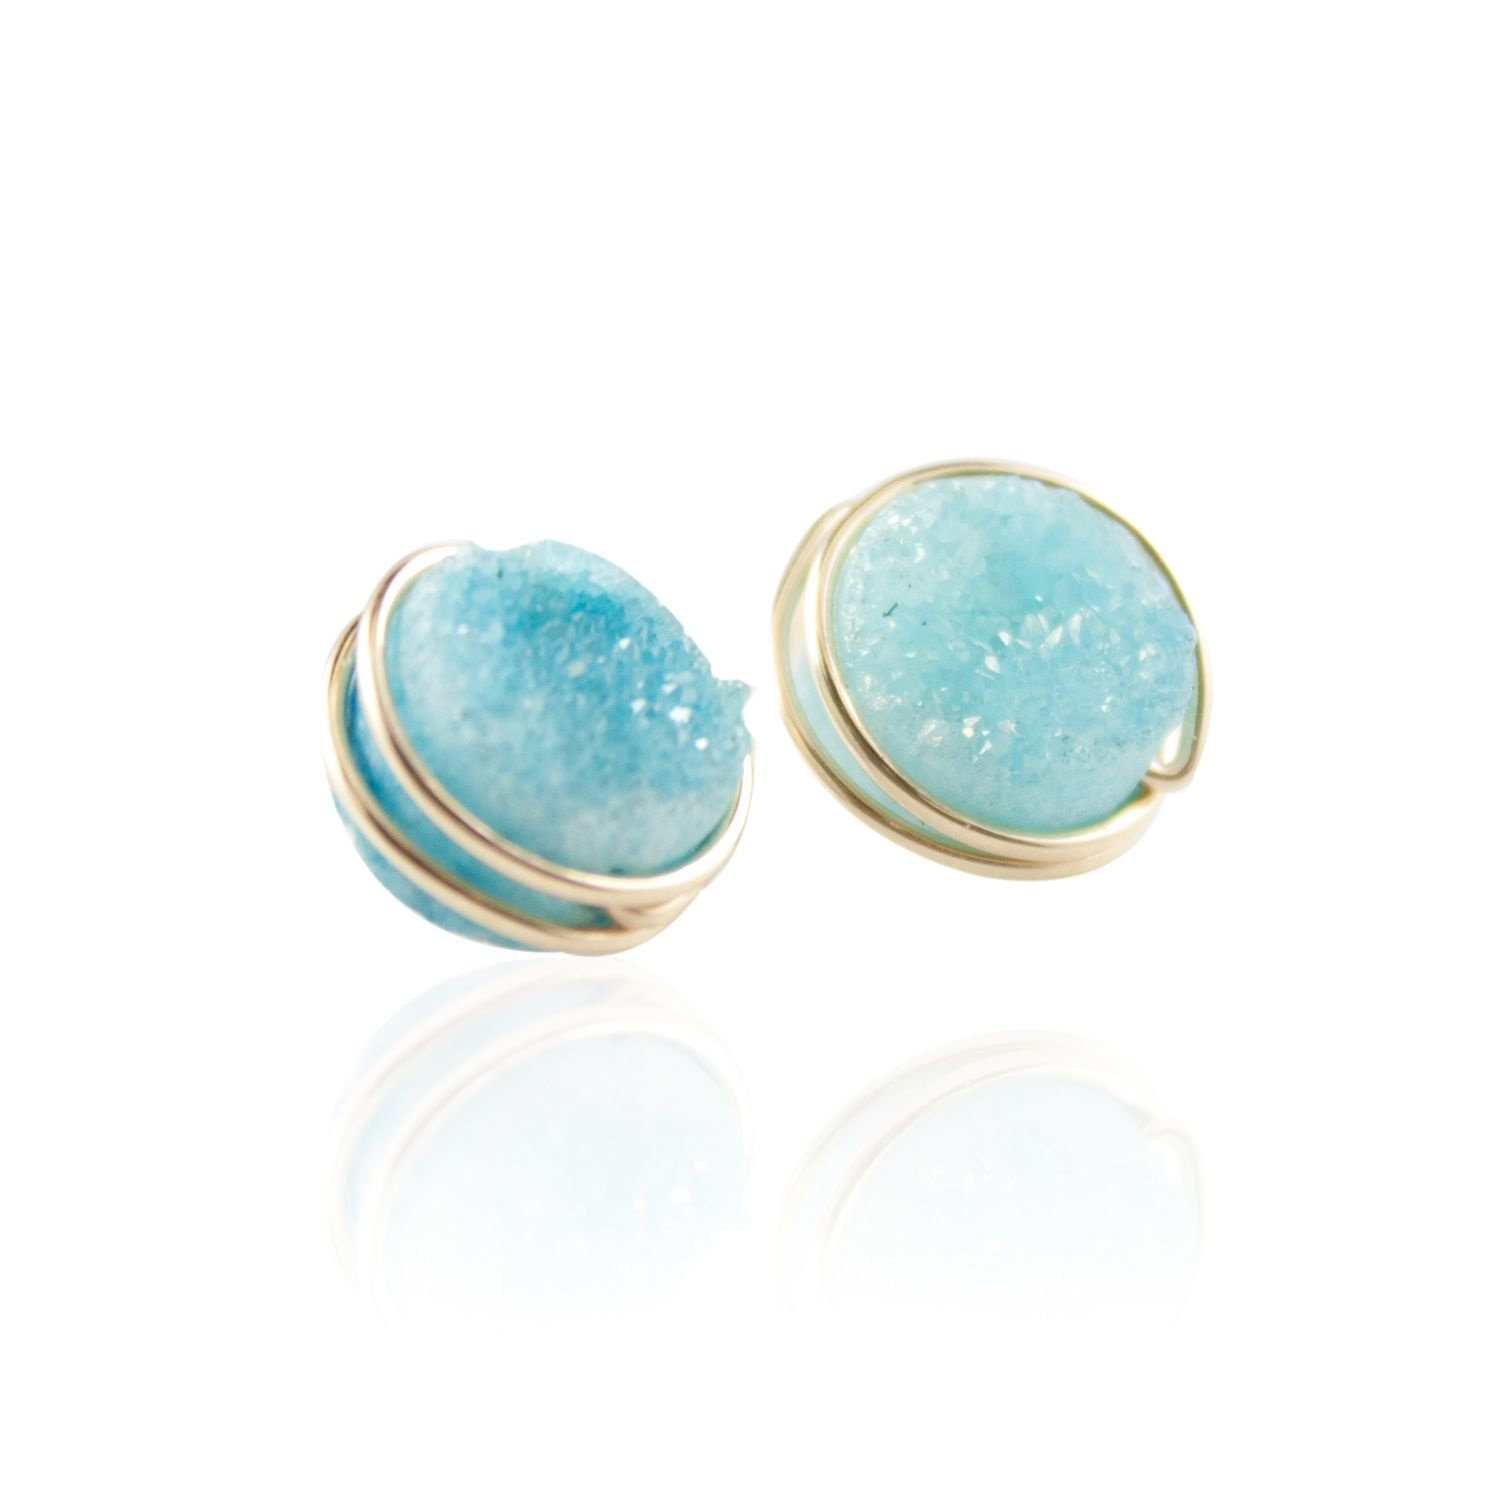 Tiffany S Blue Round Druzy Stud Earrings Wire Wred In 14k Gold Filled